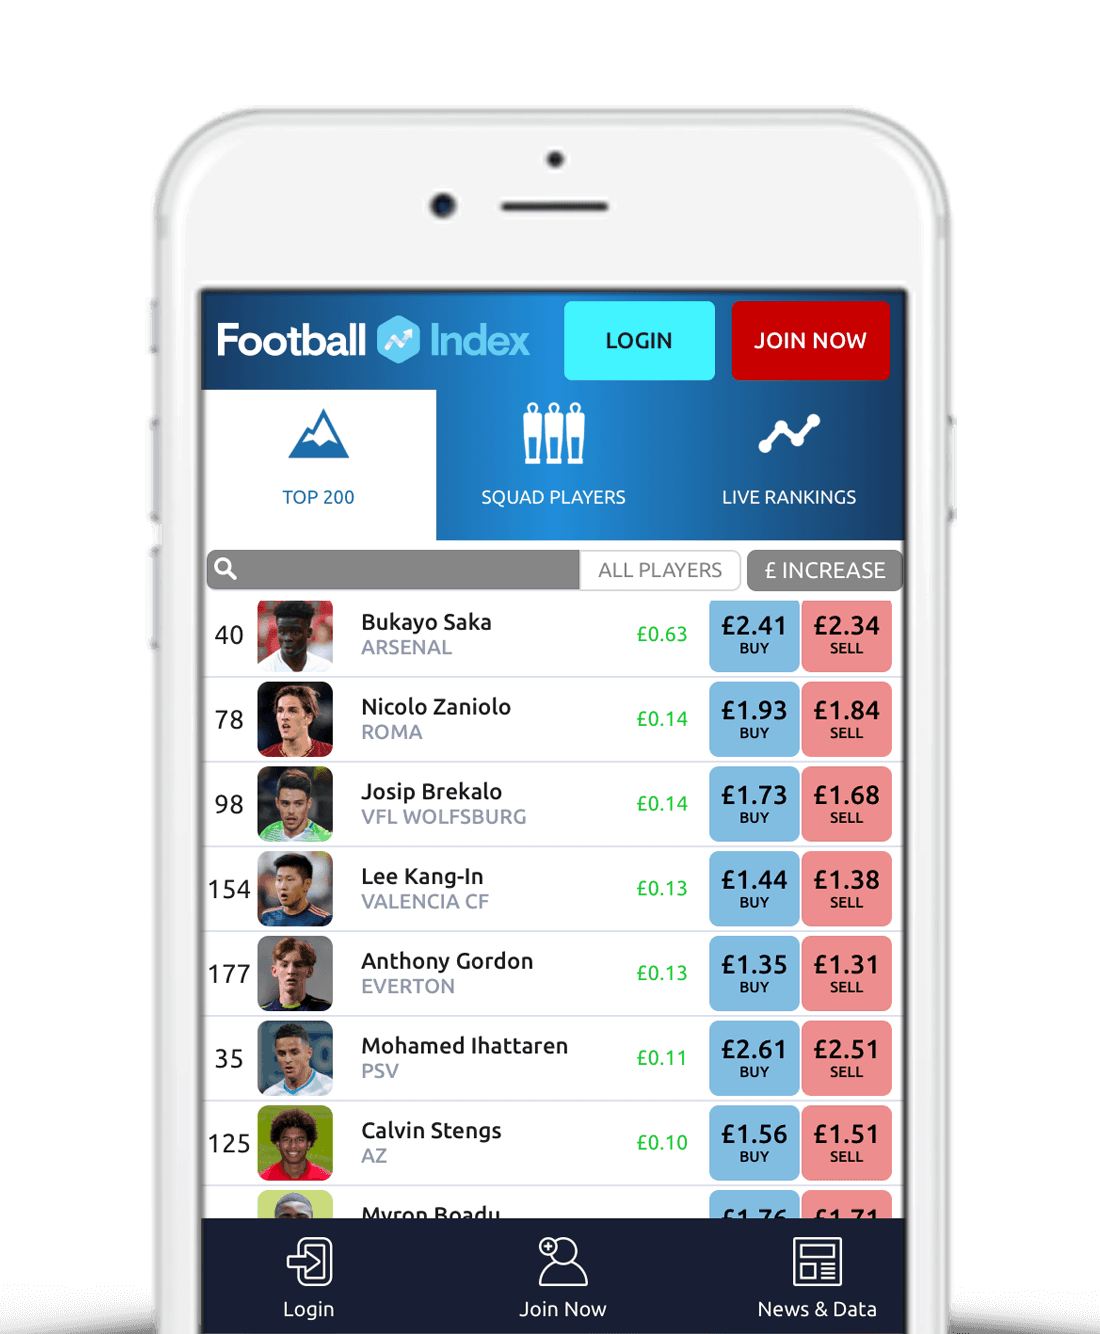 Football Index Sign Up Offer Explained